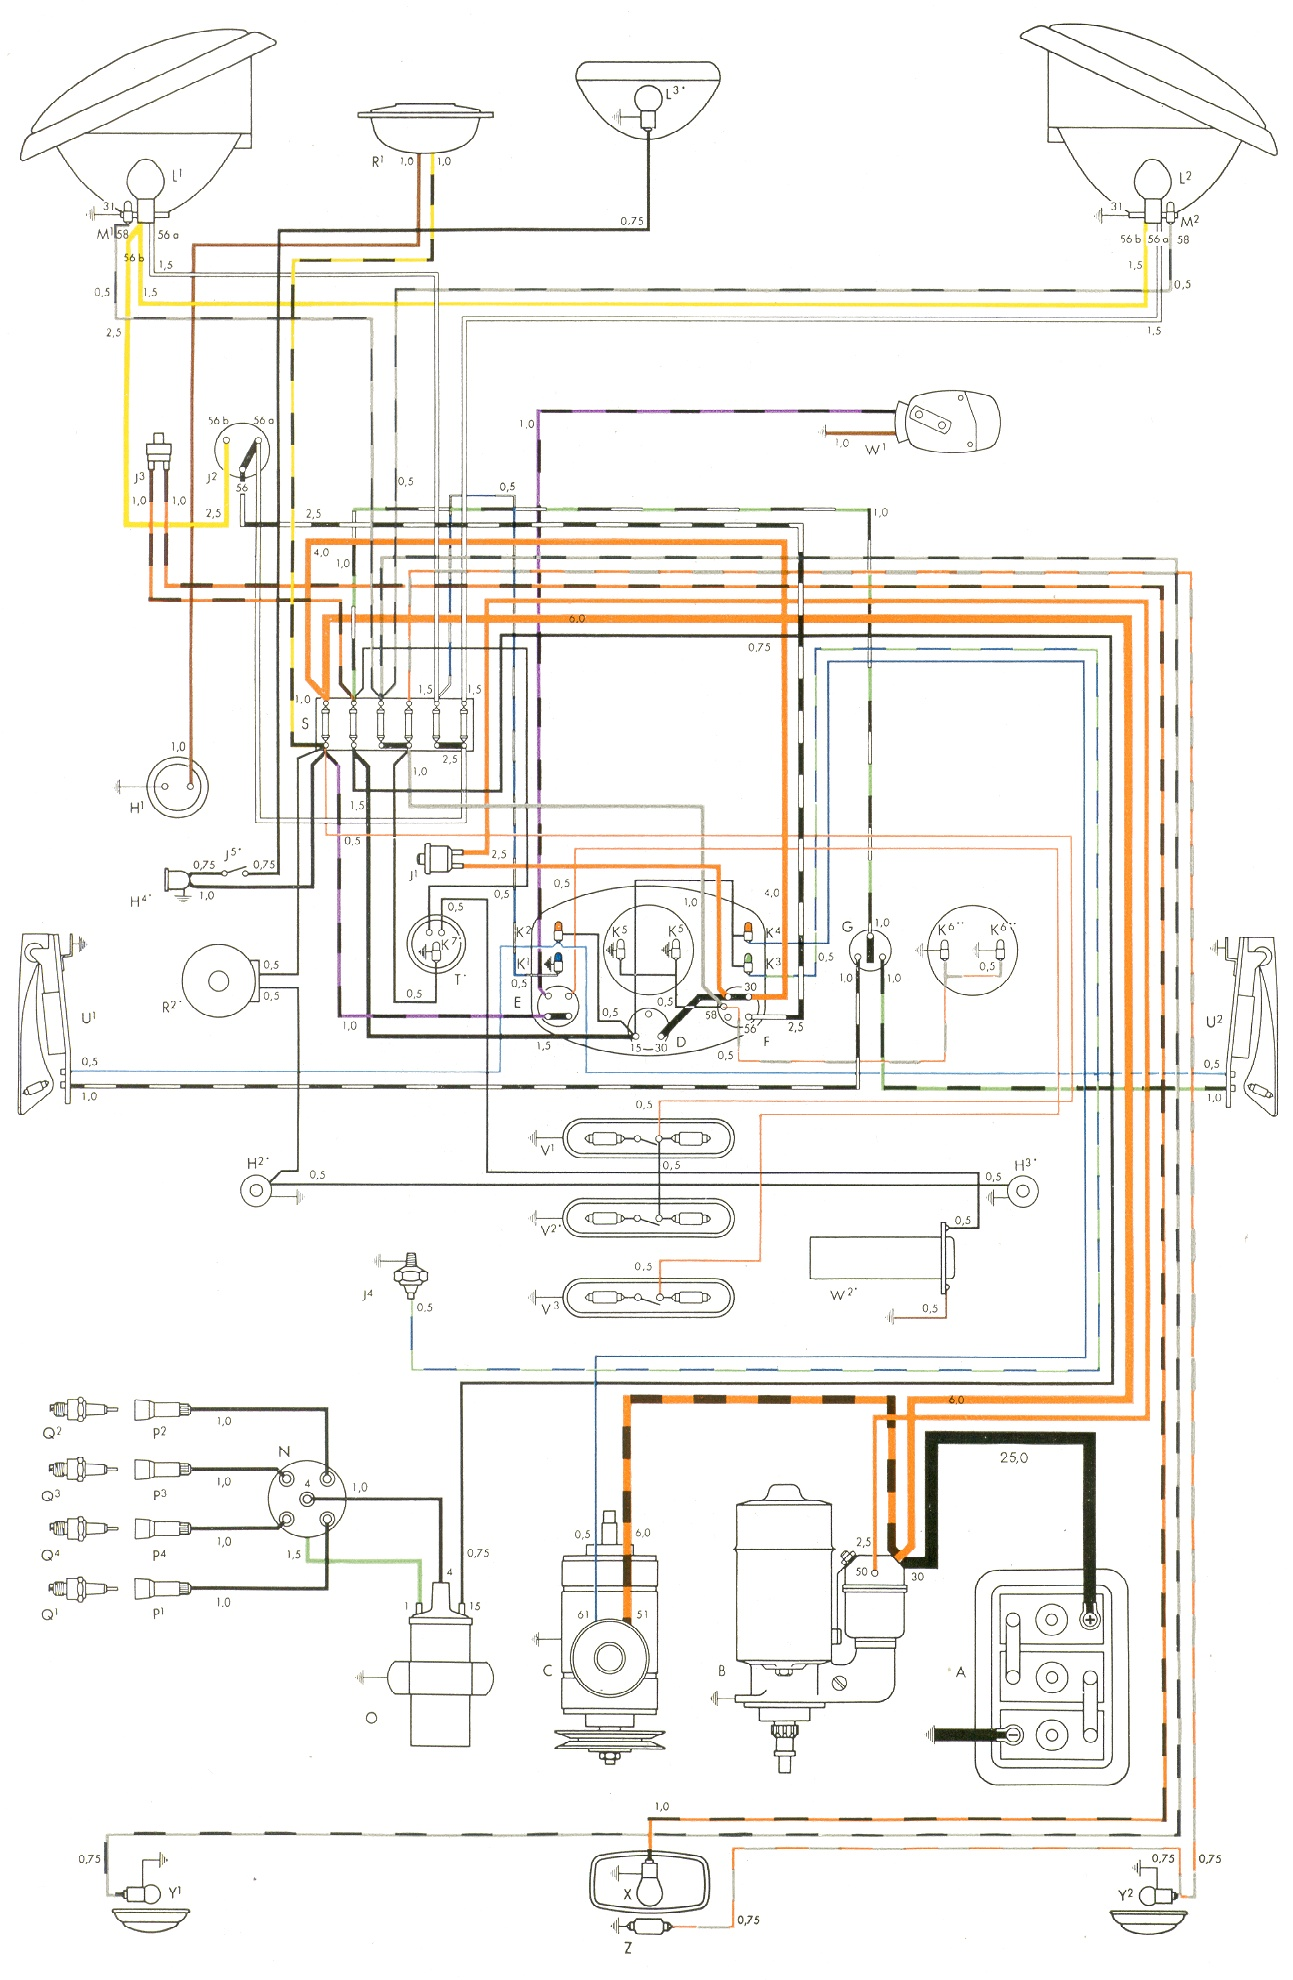 1969 vw beetle ignition coil wiring diagram truck lite led headlight bus free engine image for user